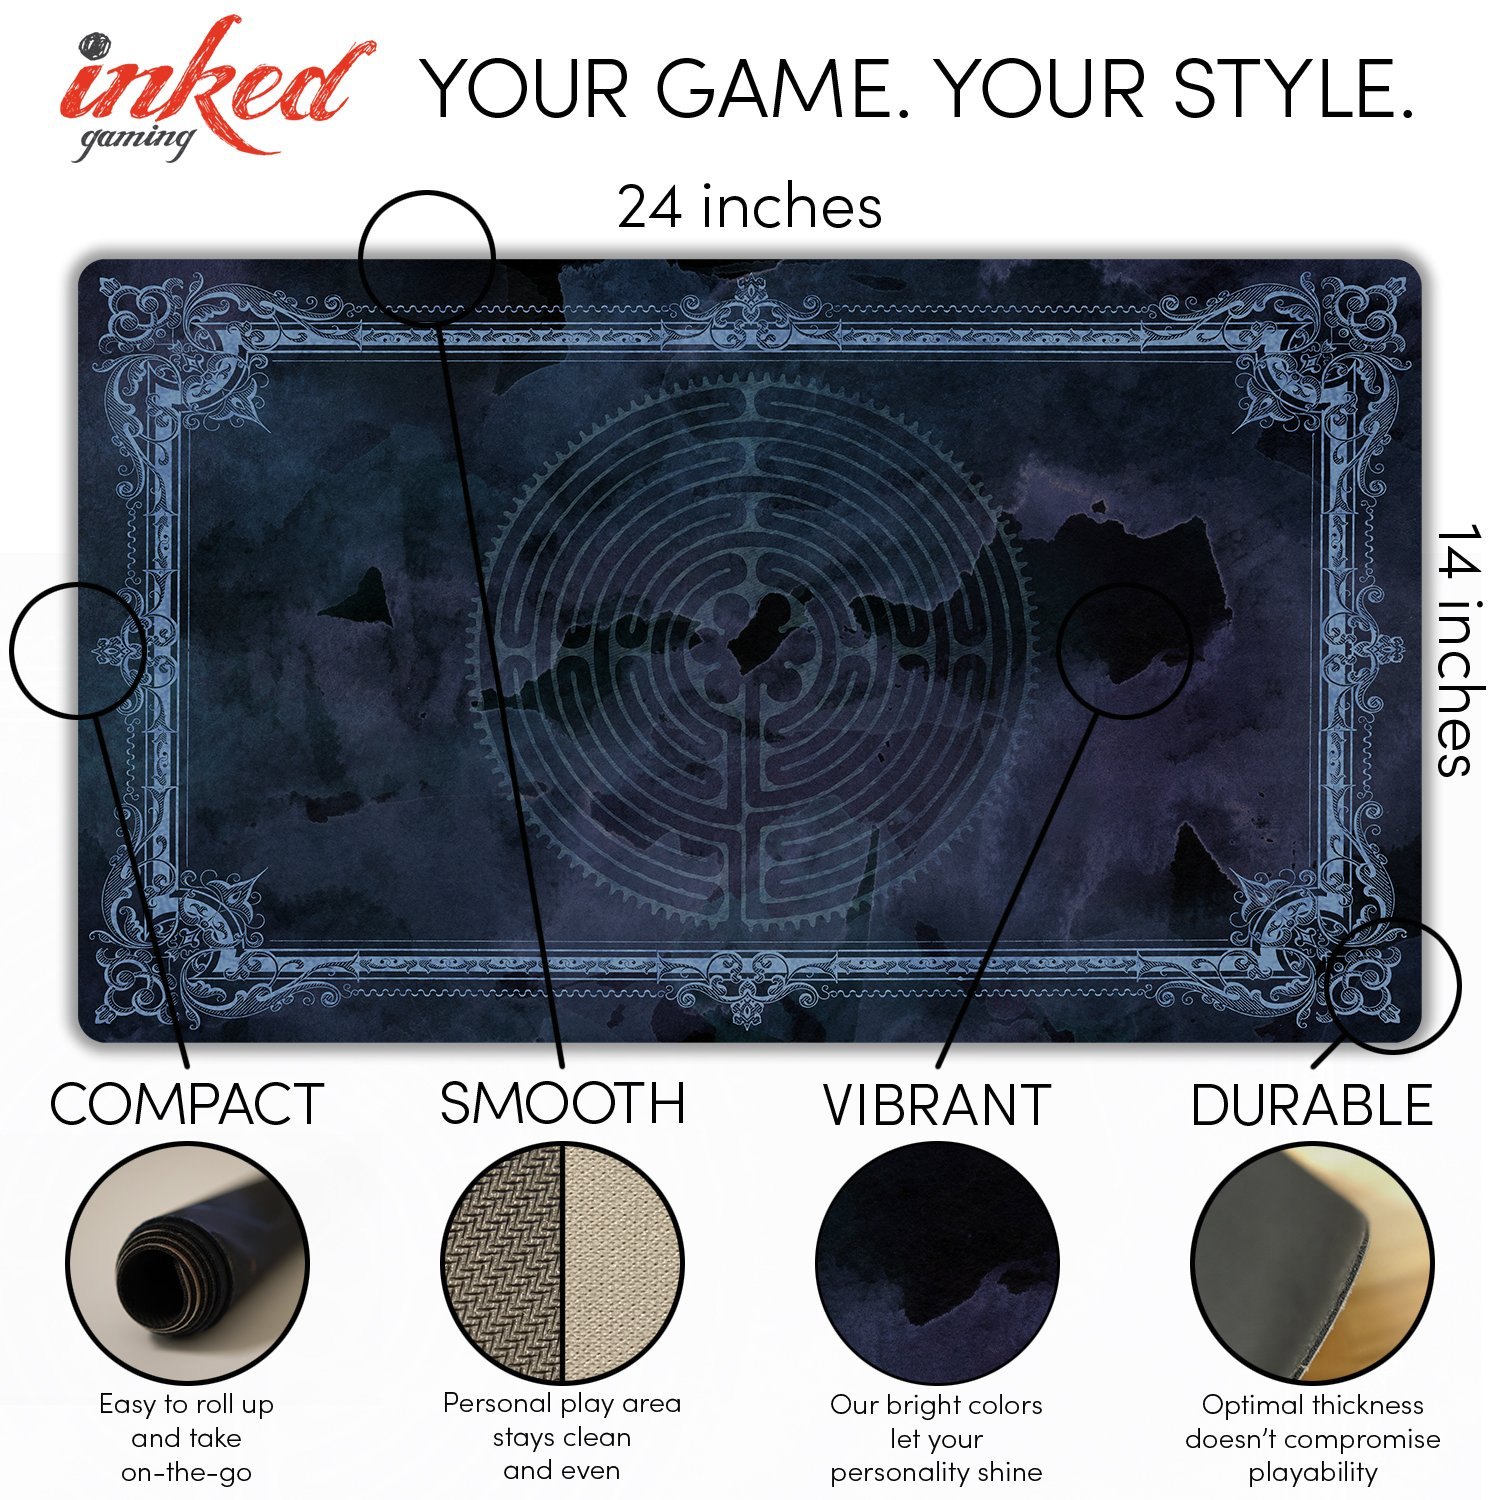 Inked Playmats Labryinth Morgan Playmat Inked Gaming Perfect for Card Gaming TCG Game Mat by Inked Playmats (Image #3)